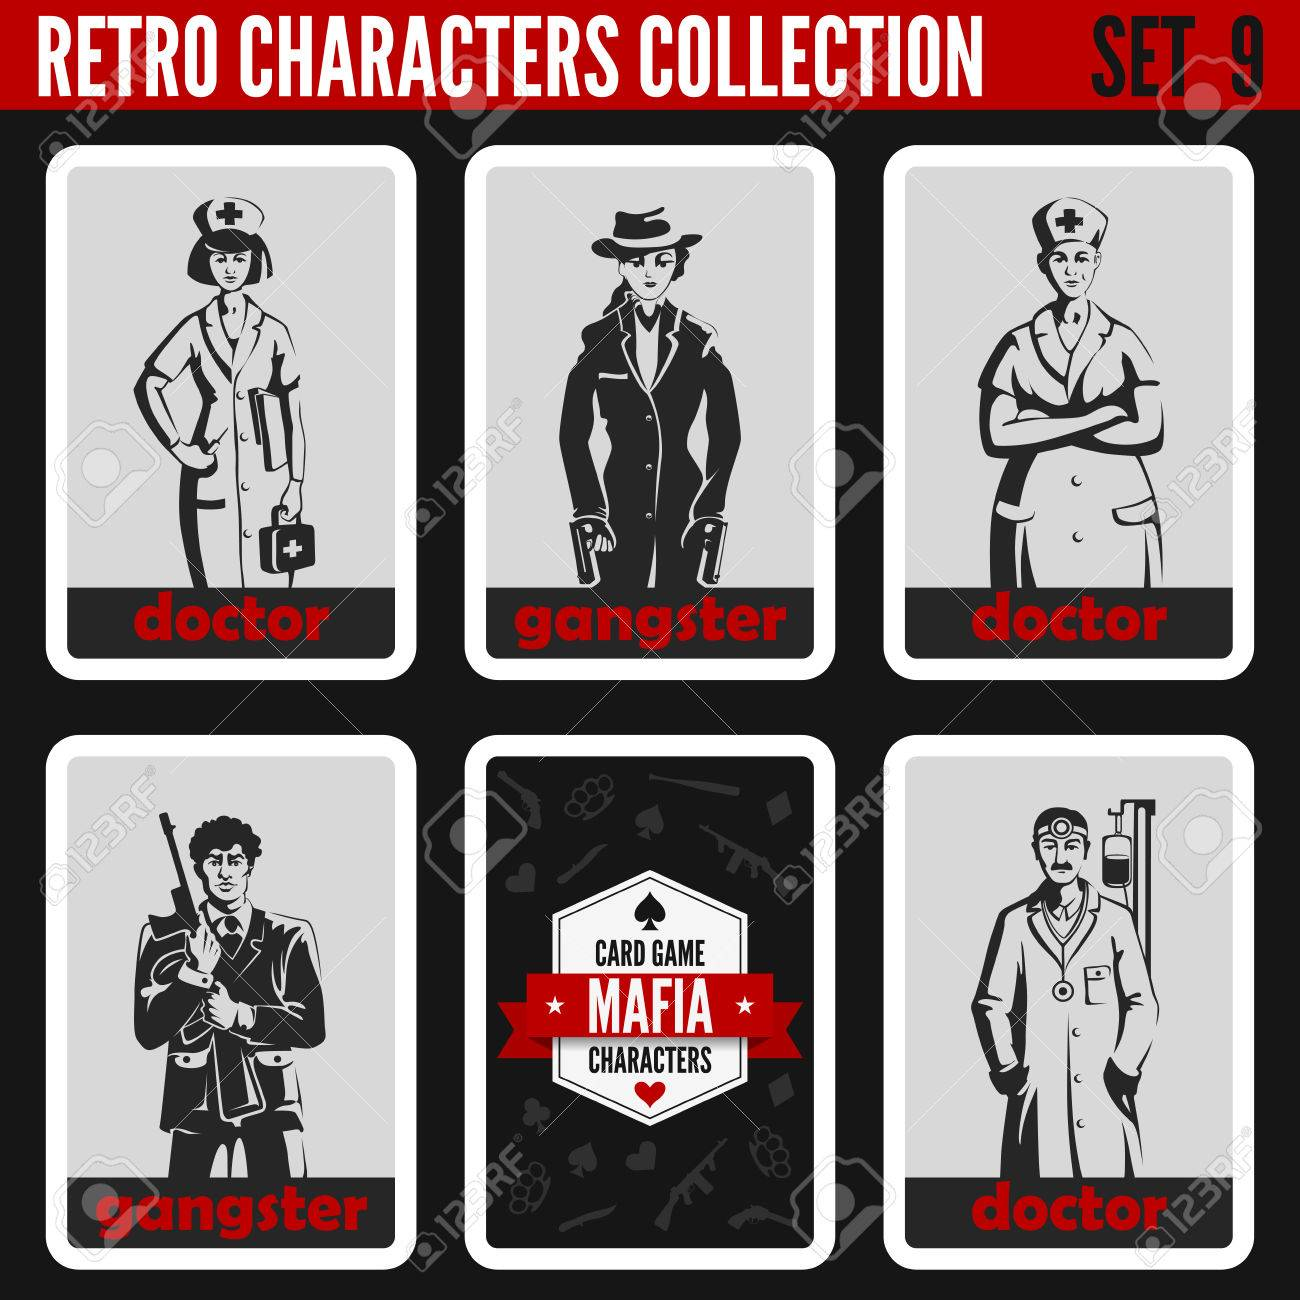 Vintage Retro People Collection Mafia Noir Style Gangsters Doctors Professions Silhouettes